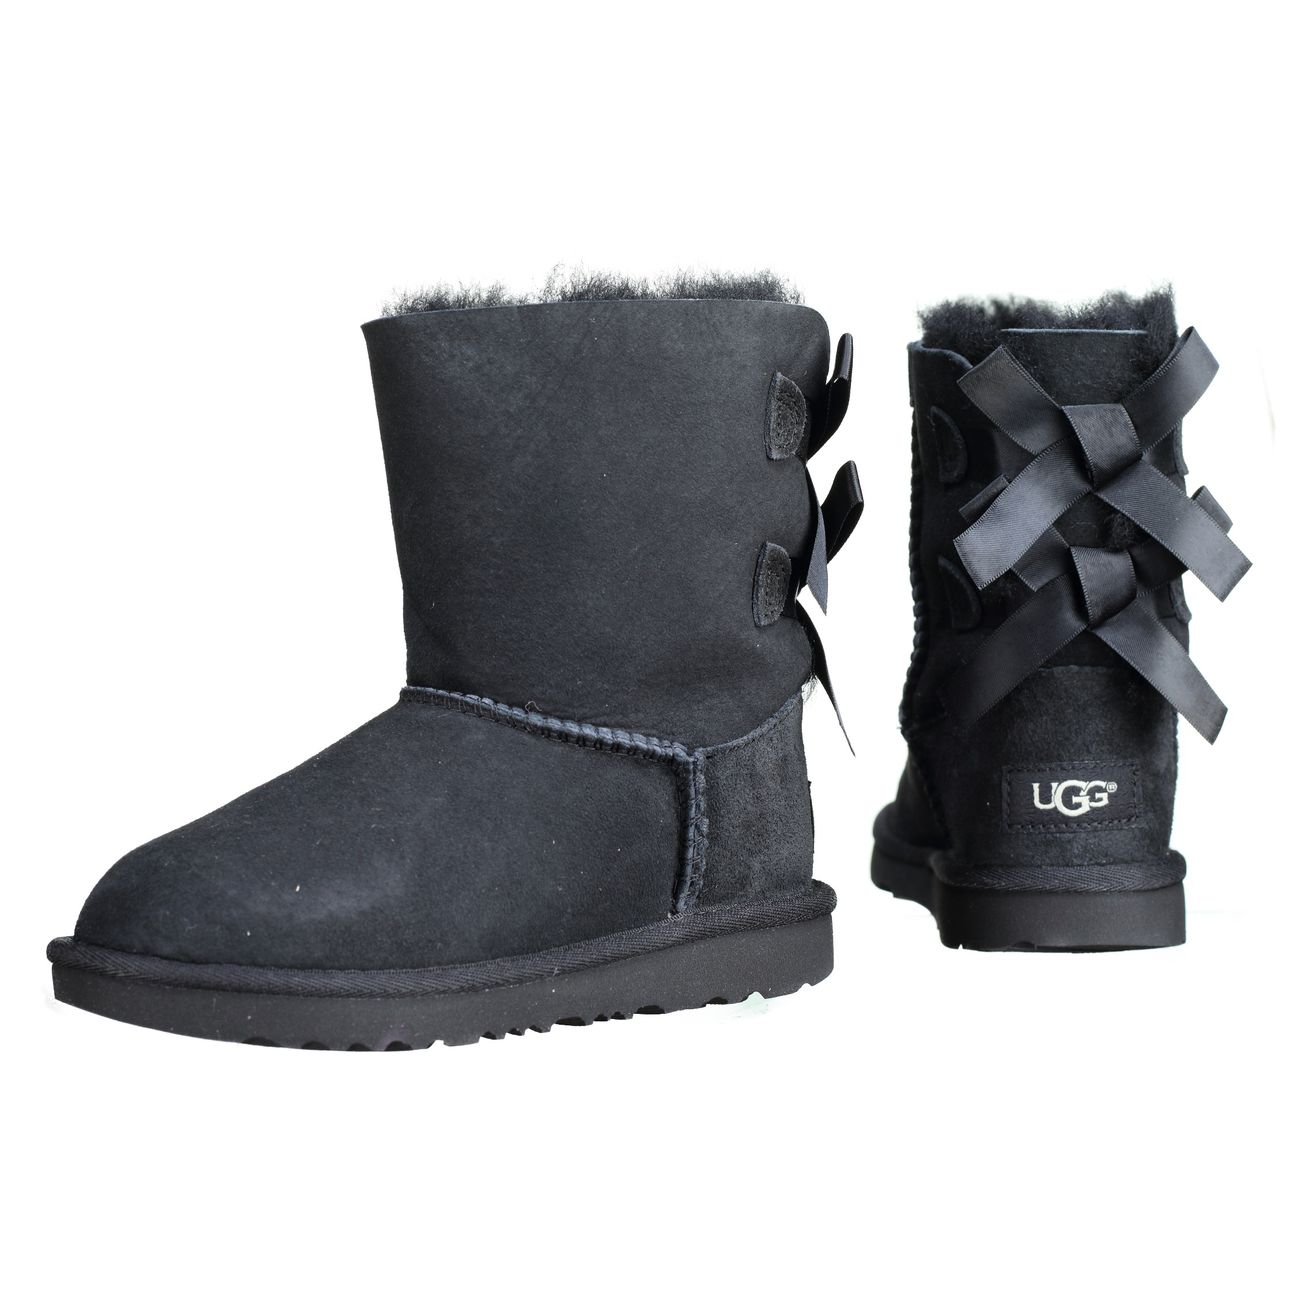 879eacab79103 Mode- Lifestyle fille UGG Bottes fille UGG T Bailey Bow 2 1017394t T   Black  ...